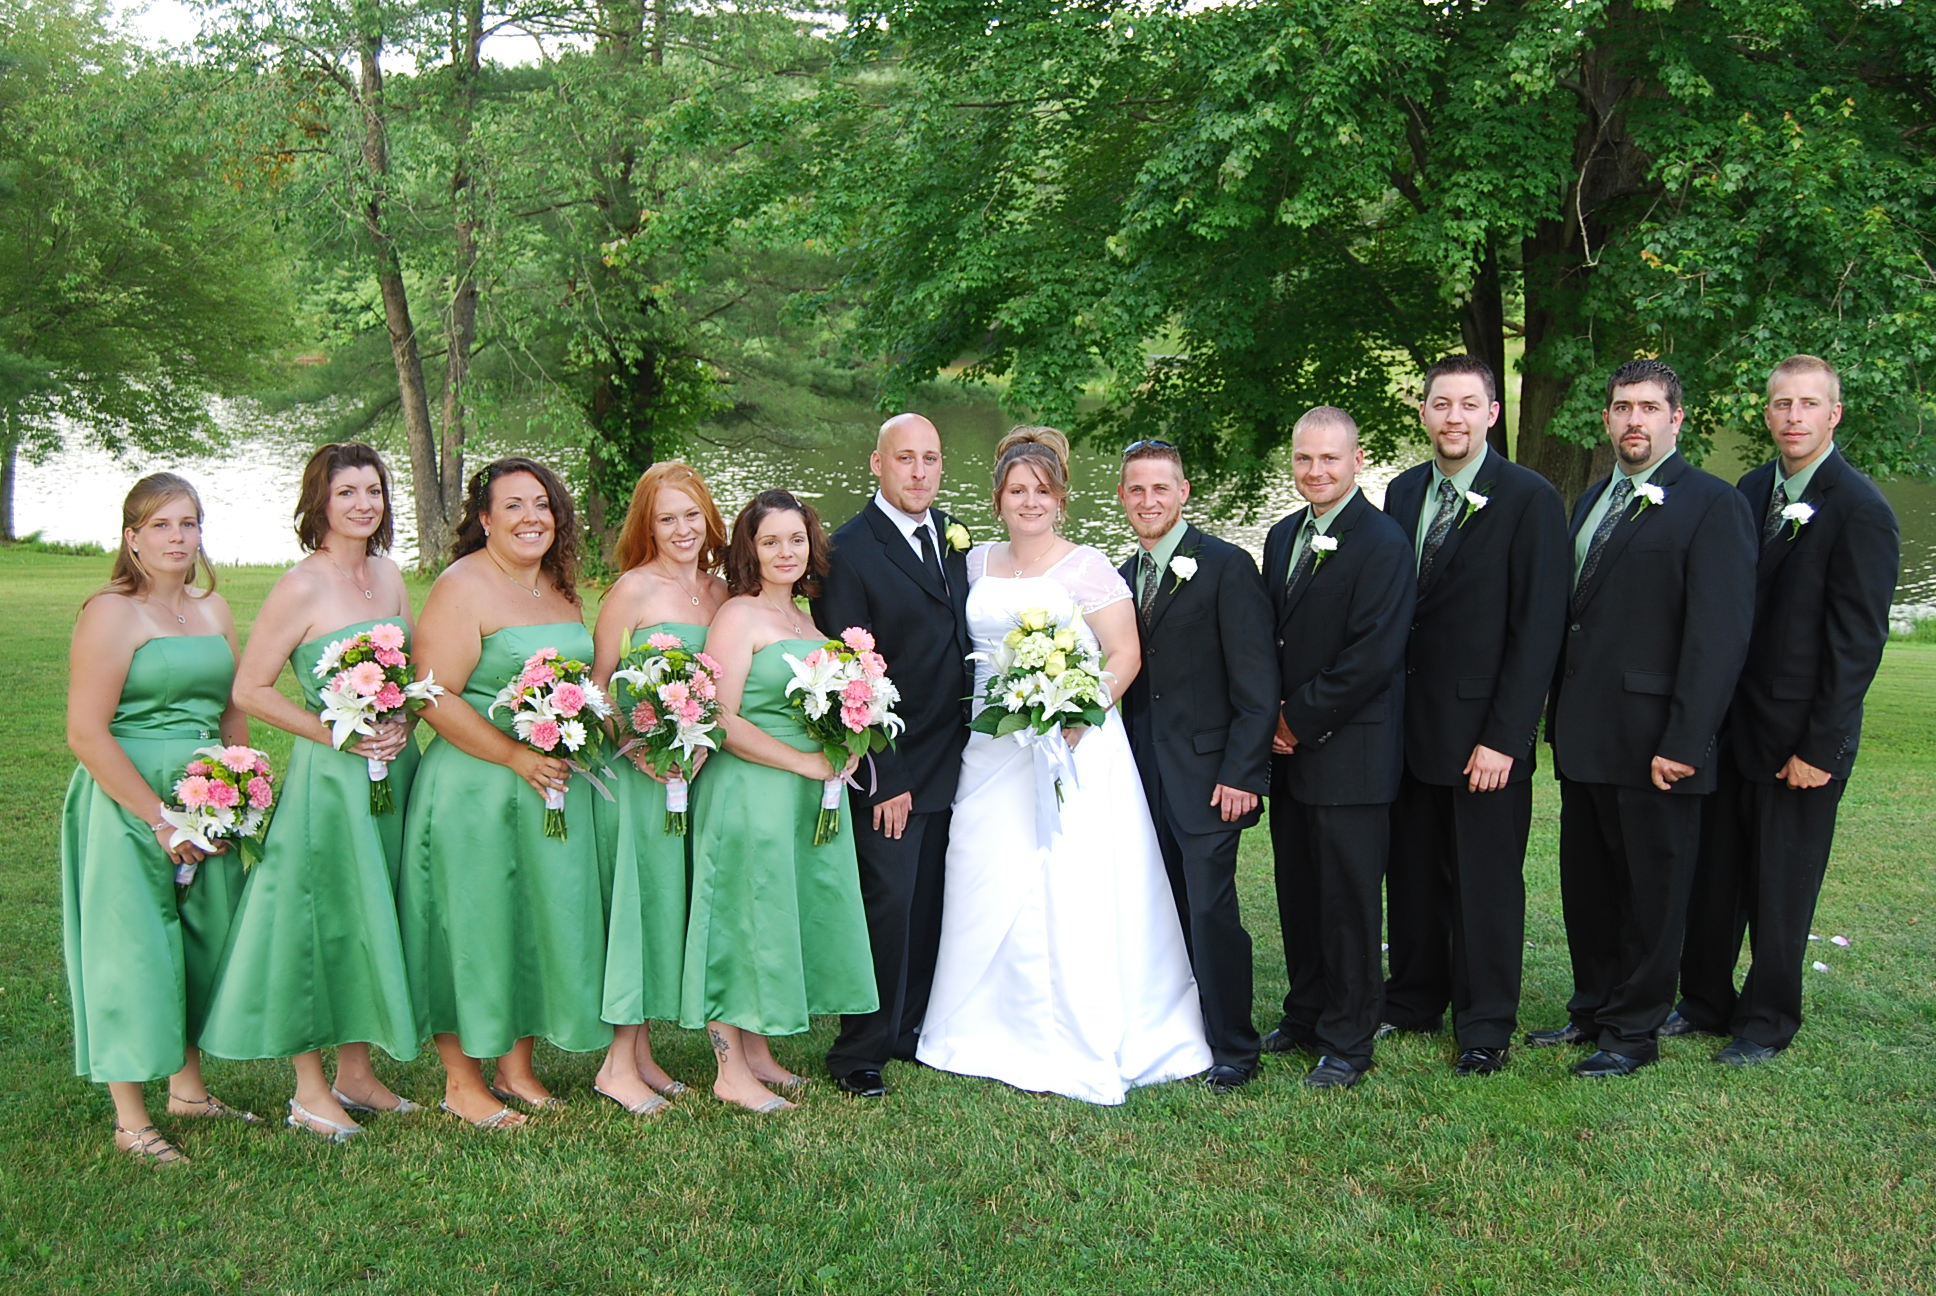 Irish Theme Wedding Ideas Traditions Song List Albany Wedding